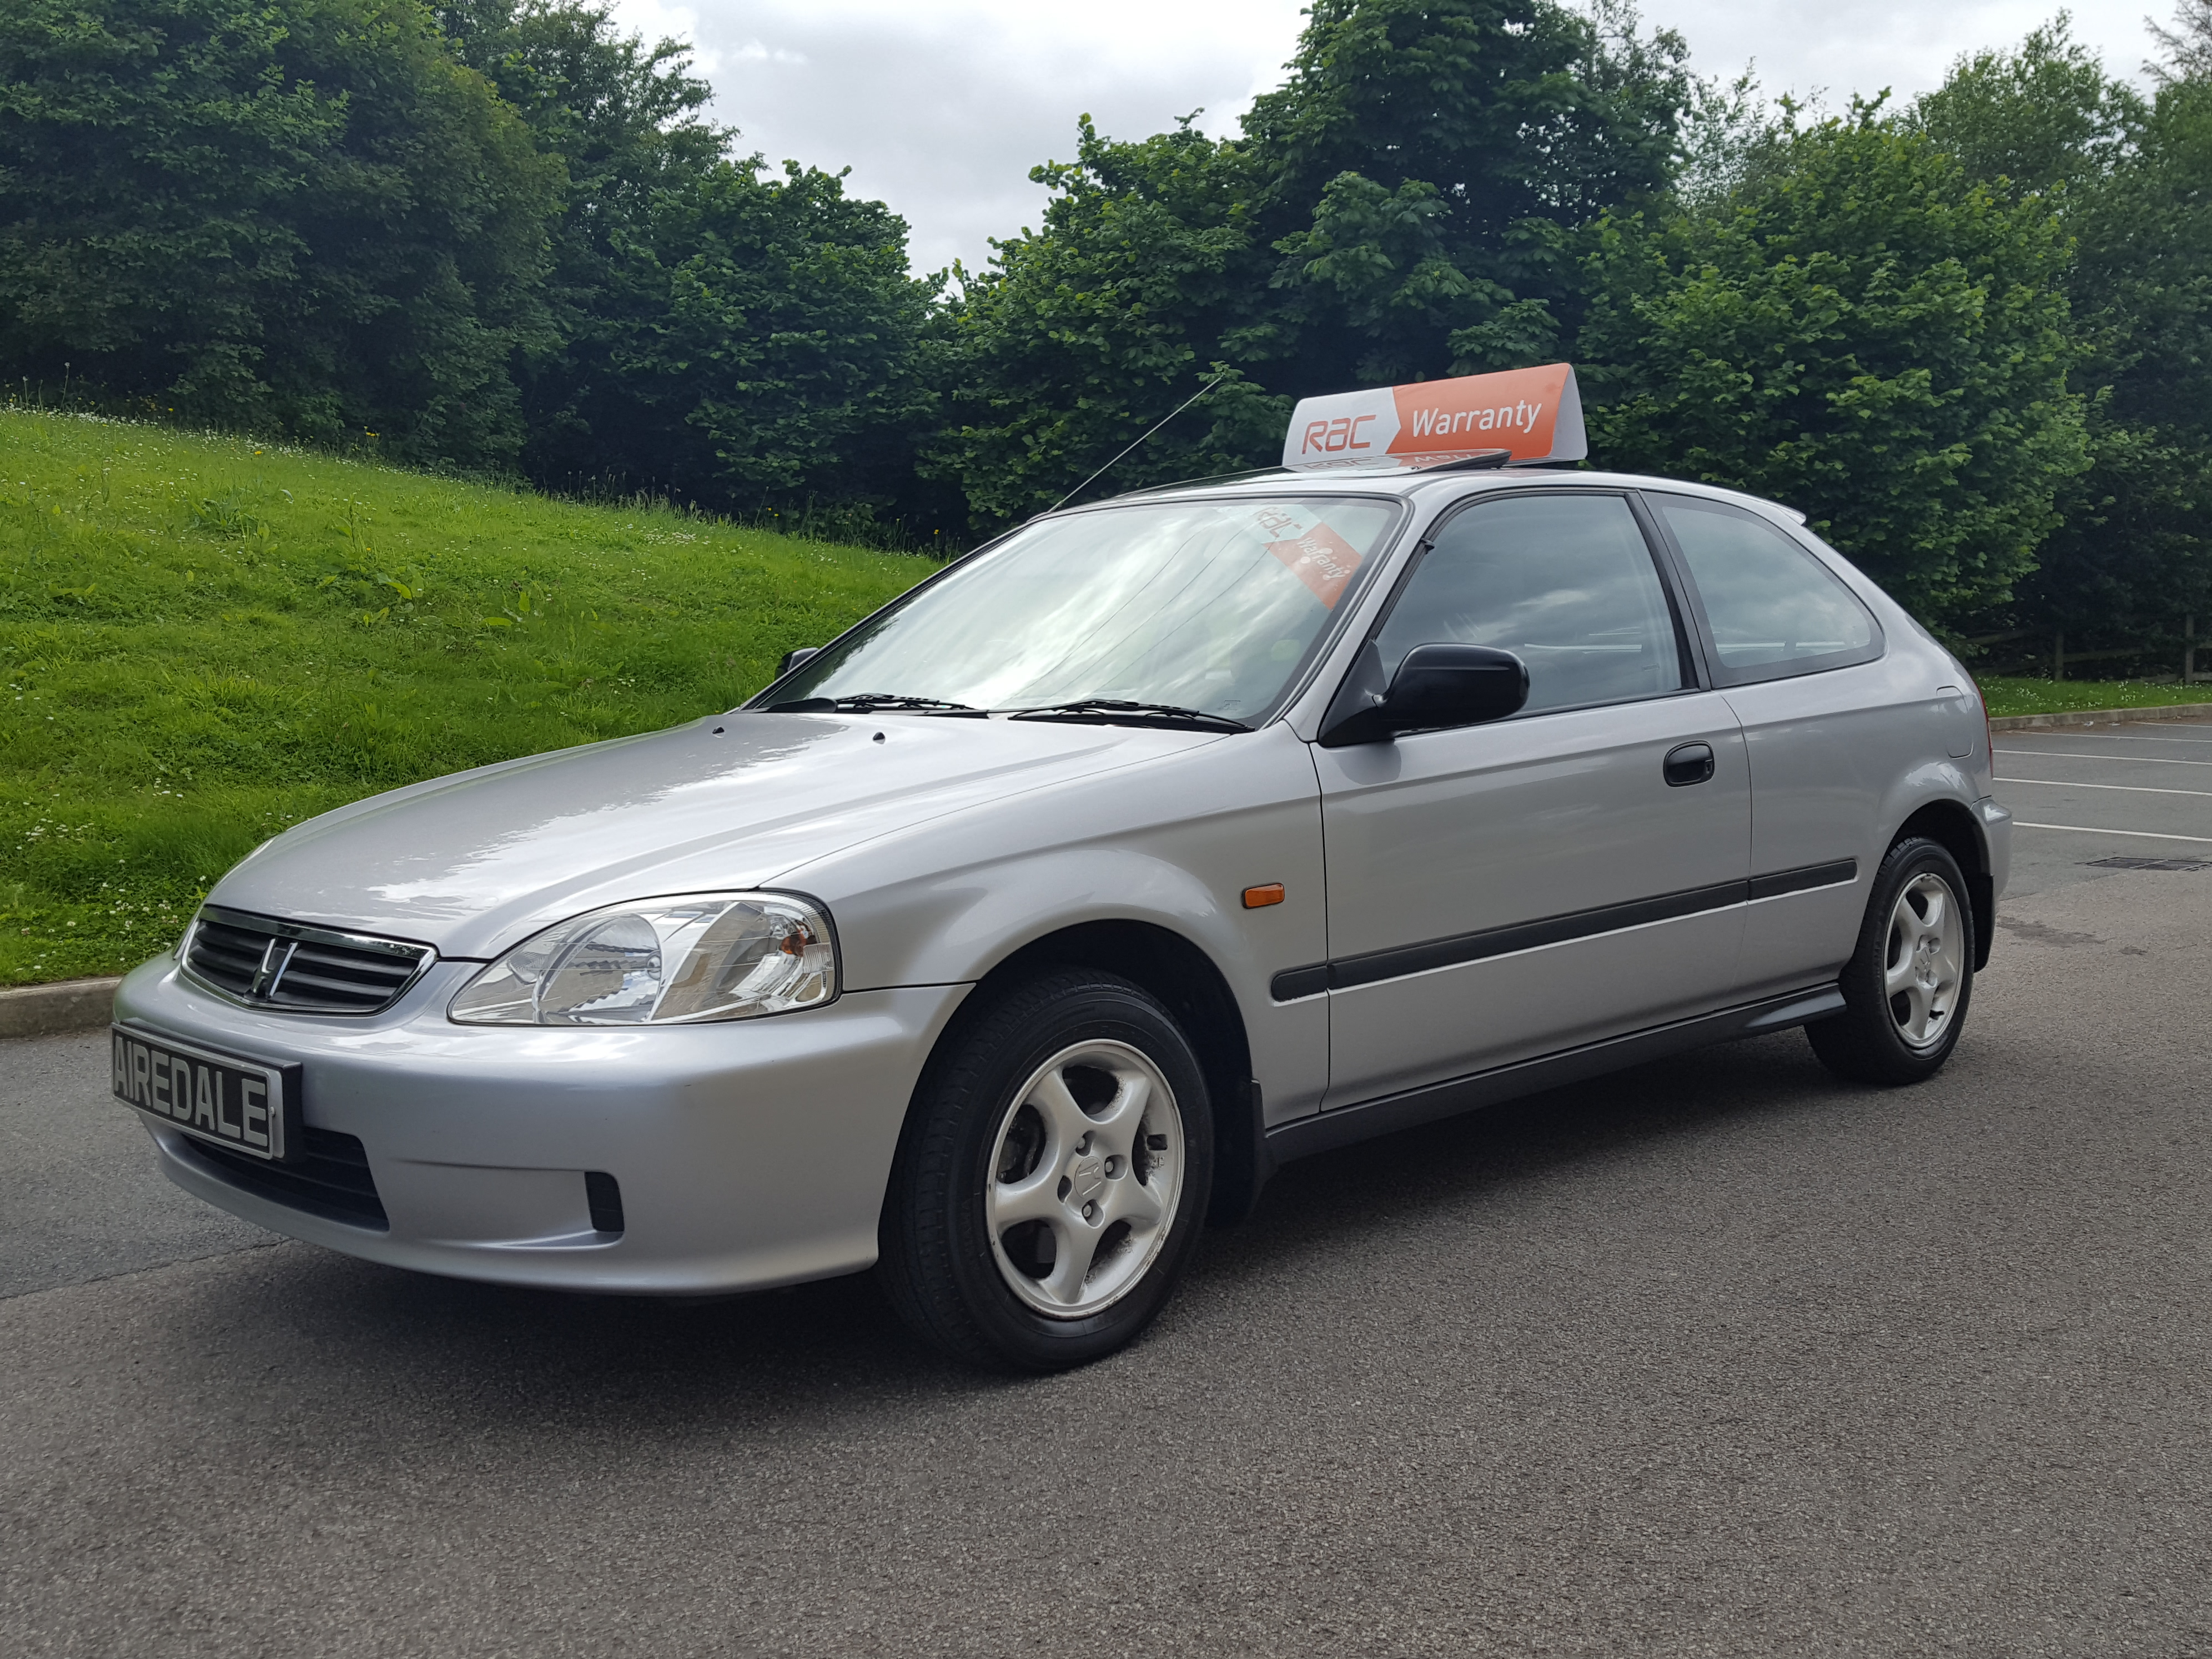 2000 Honda Civic 1.4 i Sport 3dr (sun roof) - Airedale Cars